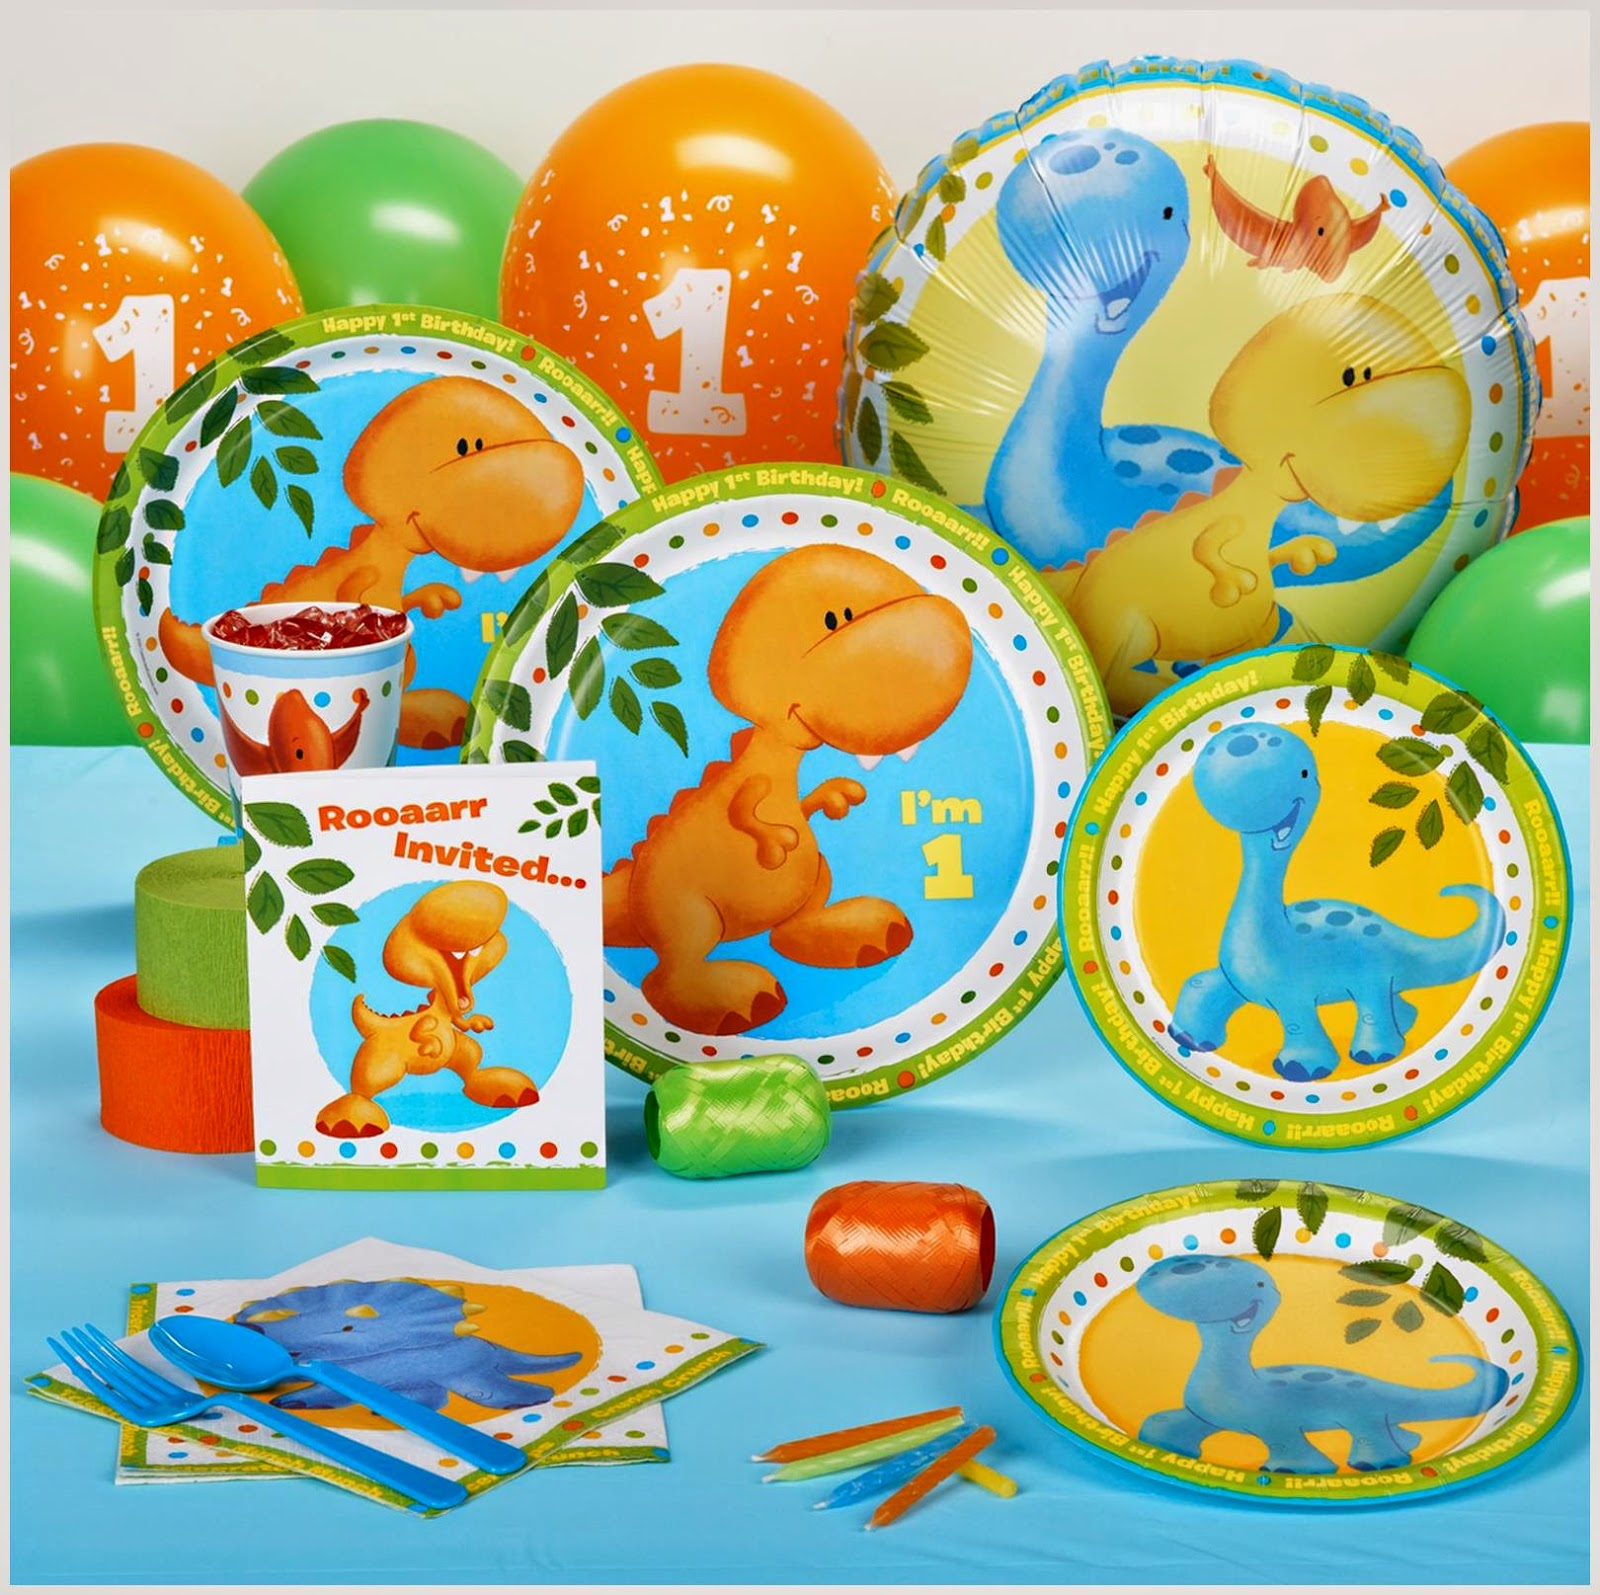 http://www.partybell.com/p-33974-little-dino-1st-birthday-standard-party-pack.aspx?utm_source=Blog&utm_medium=Social&utm_campaign=dragon-theme-party-ideas